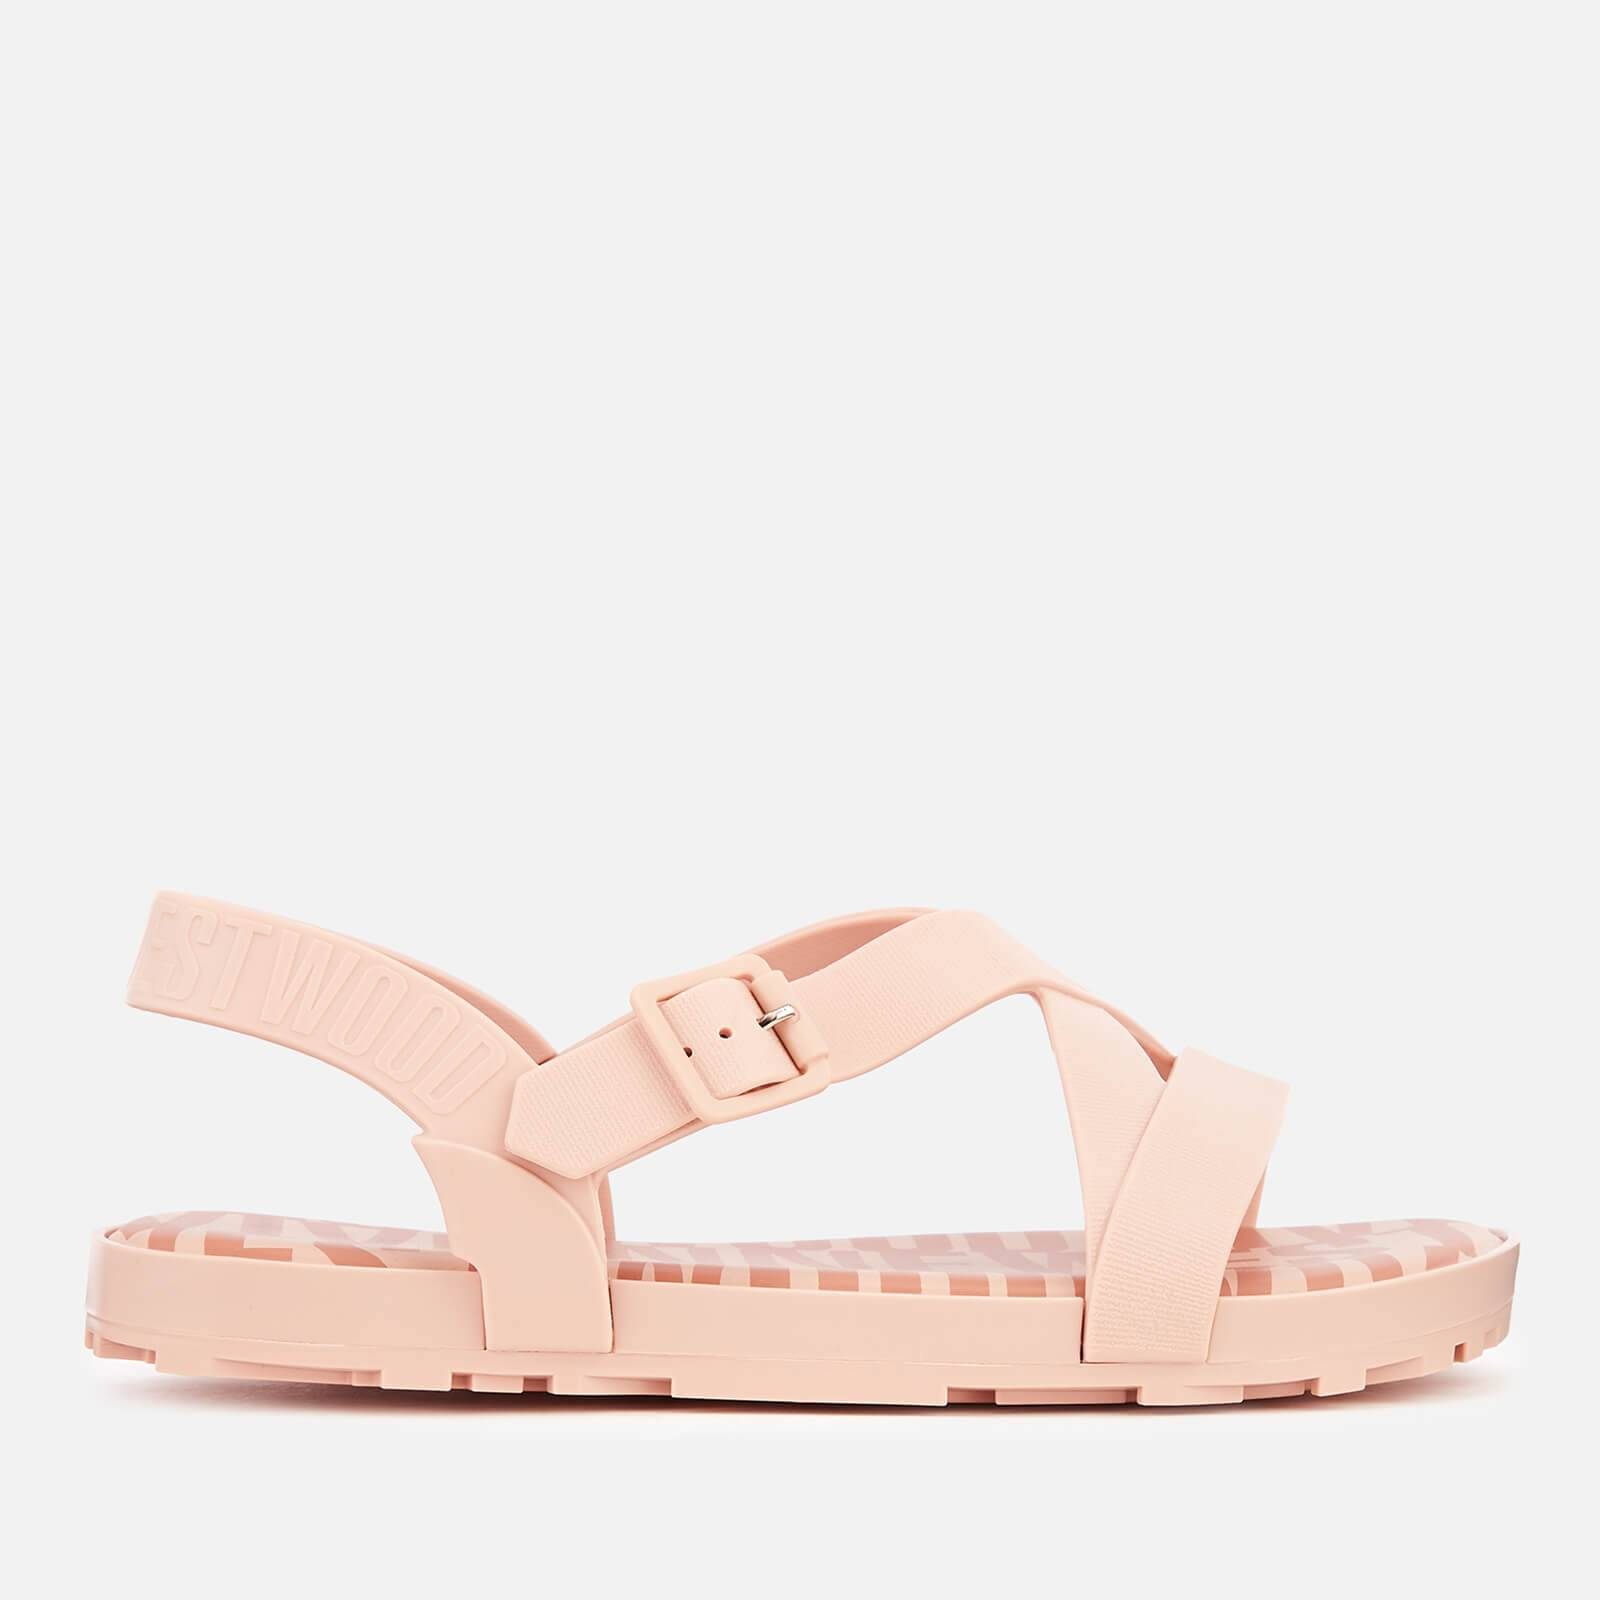 Vivienne Westwood for Melissa Women's Hermanos Strappy Sandals - Baby Pink - UK 3 - Pink